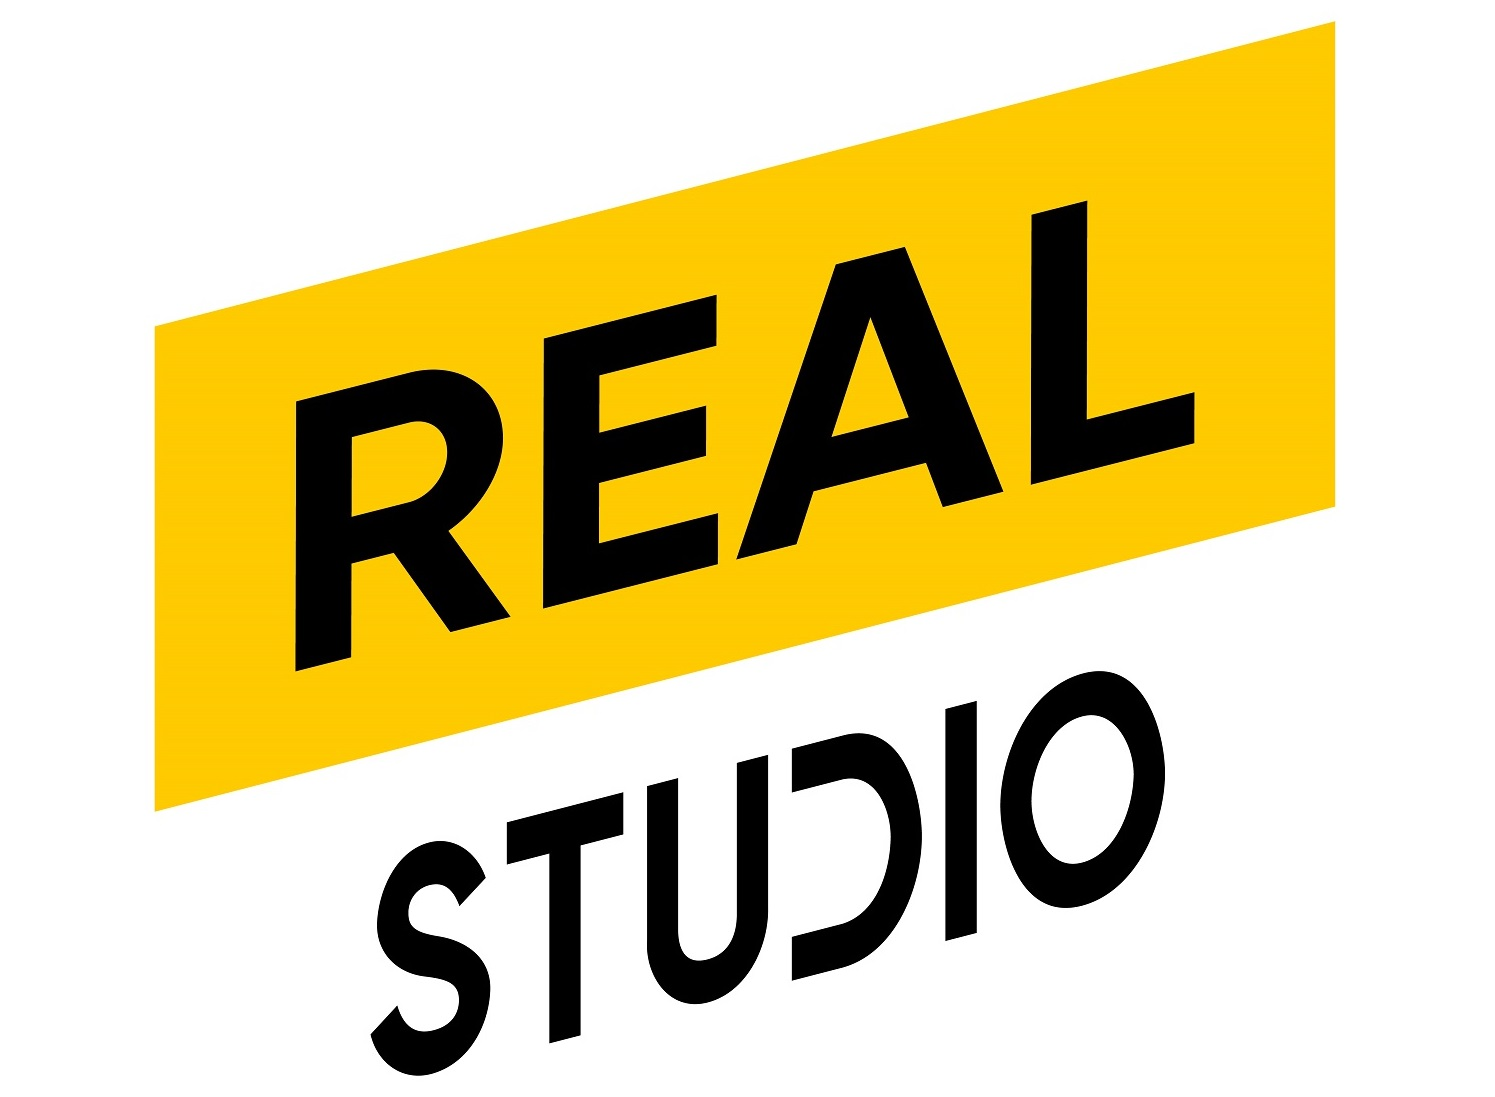 Checkout the Latest Fashion Trends at the First realstudio in Malaysia